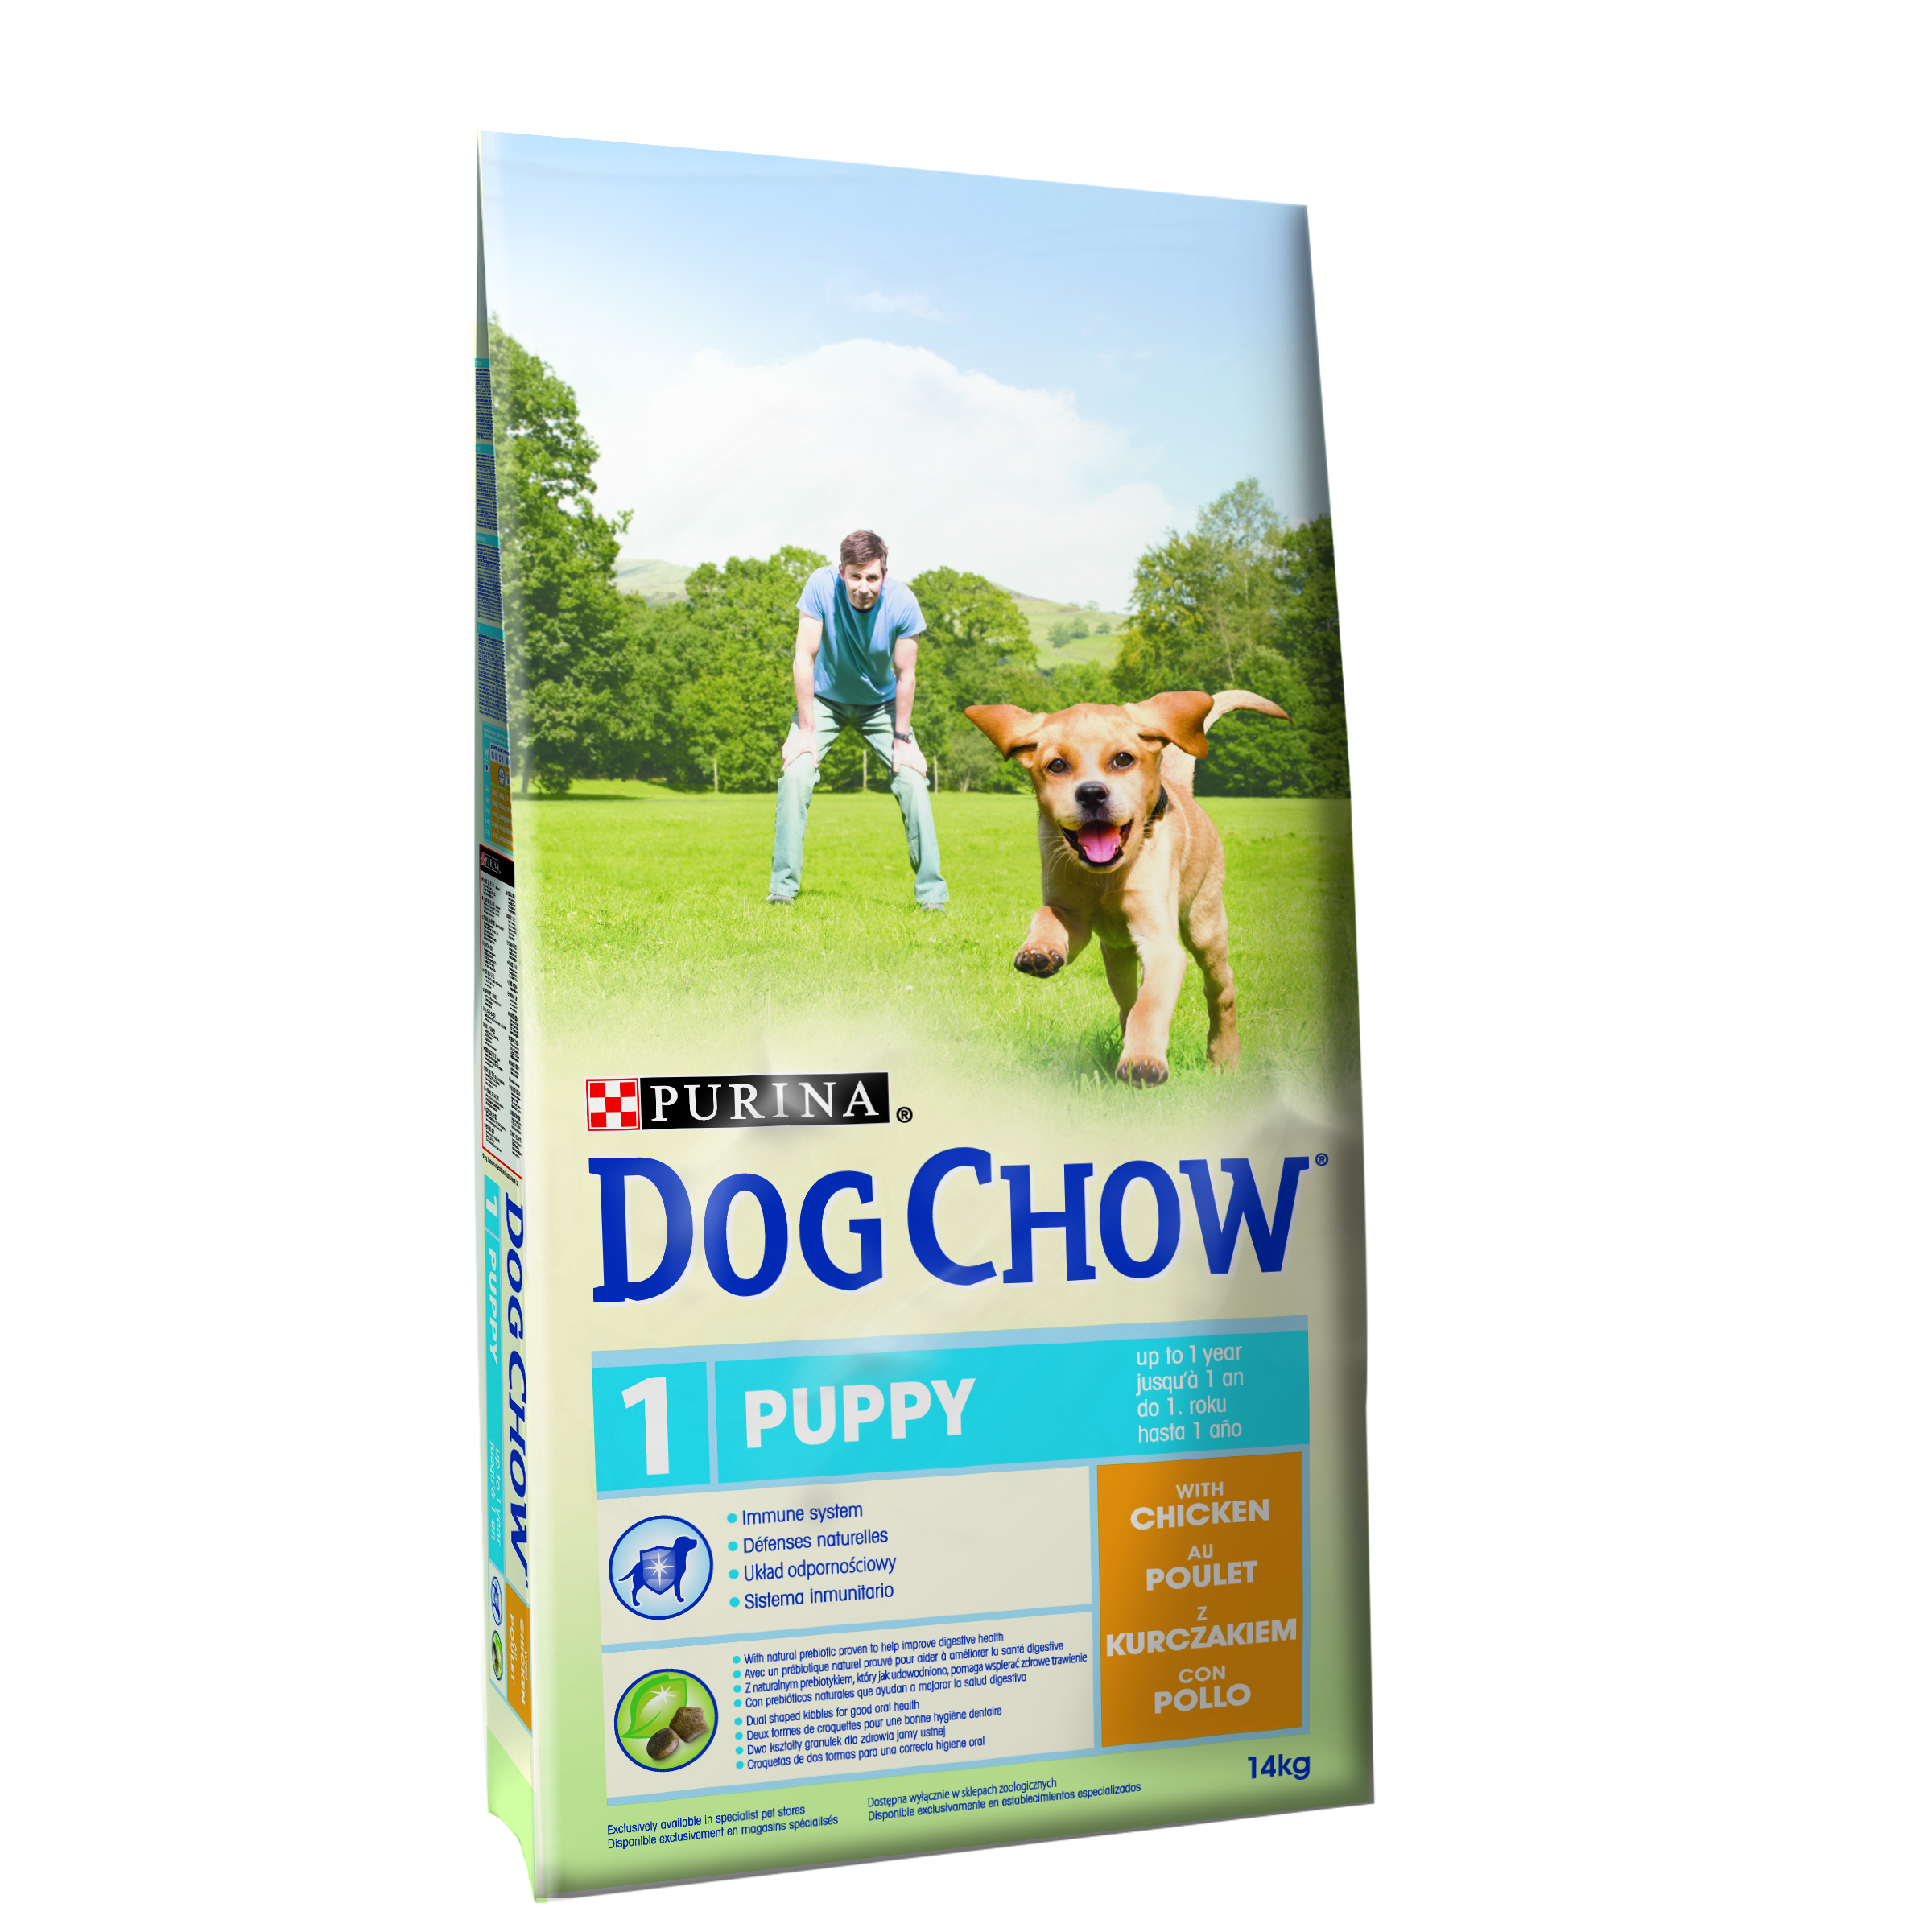 Purina Dog Chow Puppy Chicken 14 KG